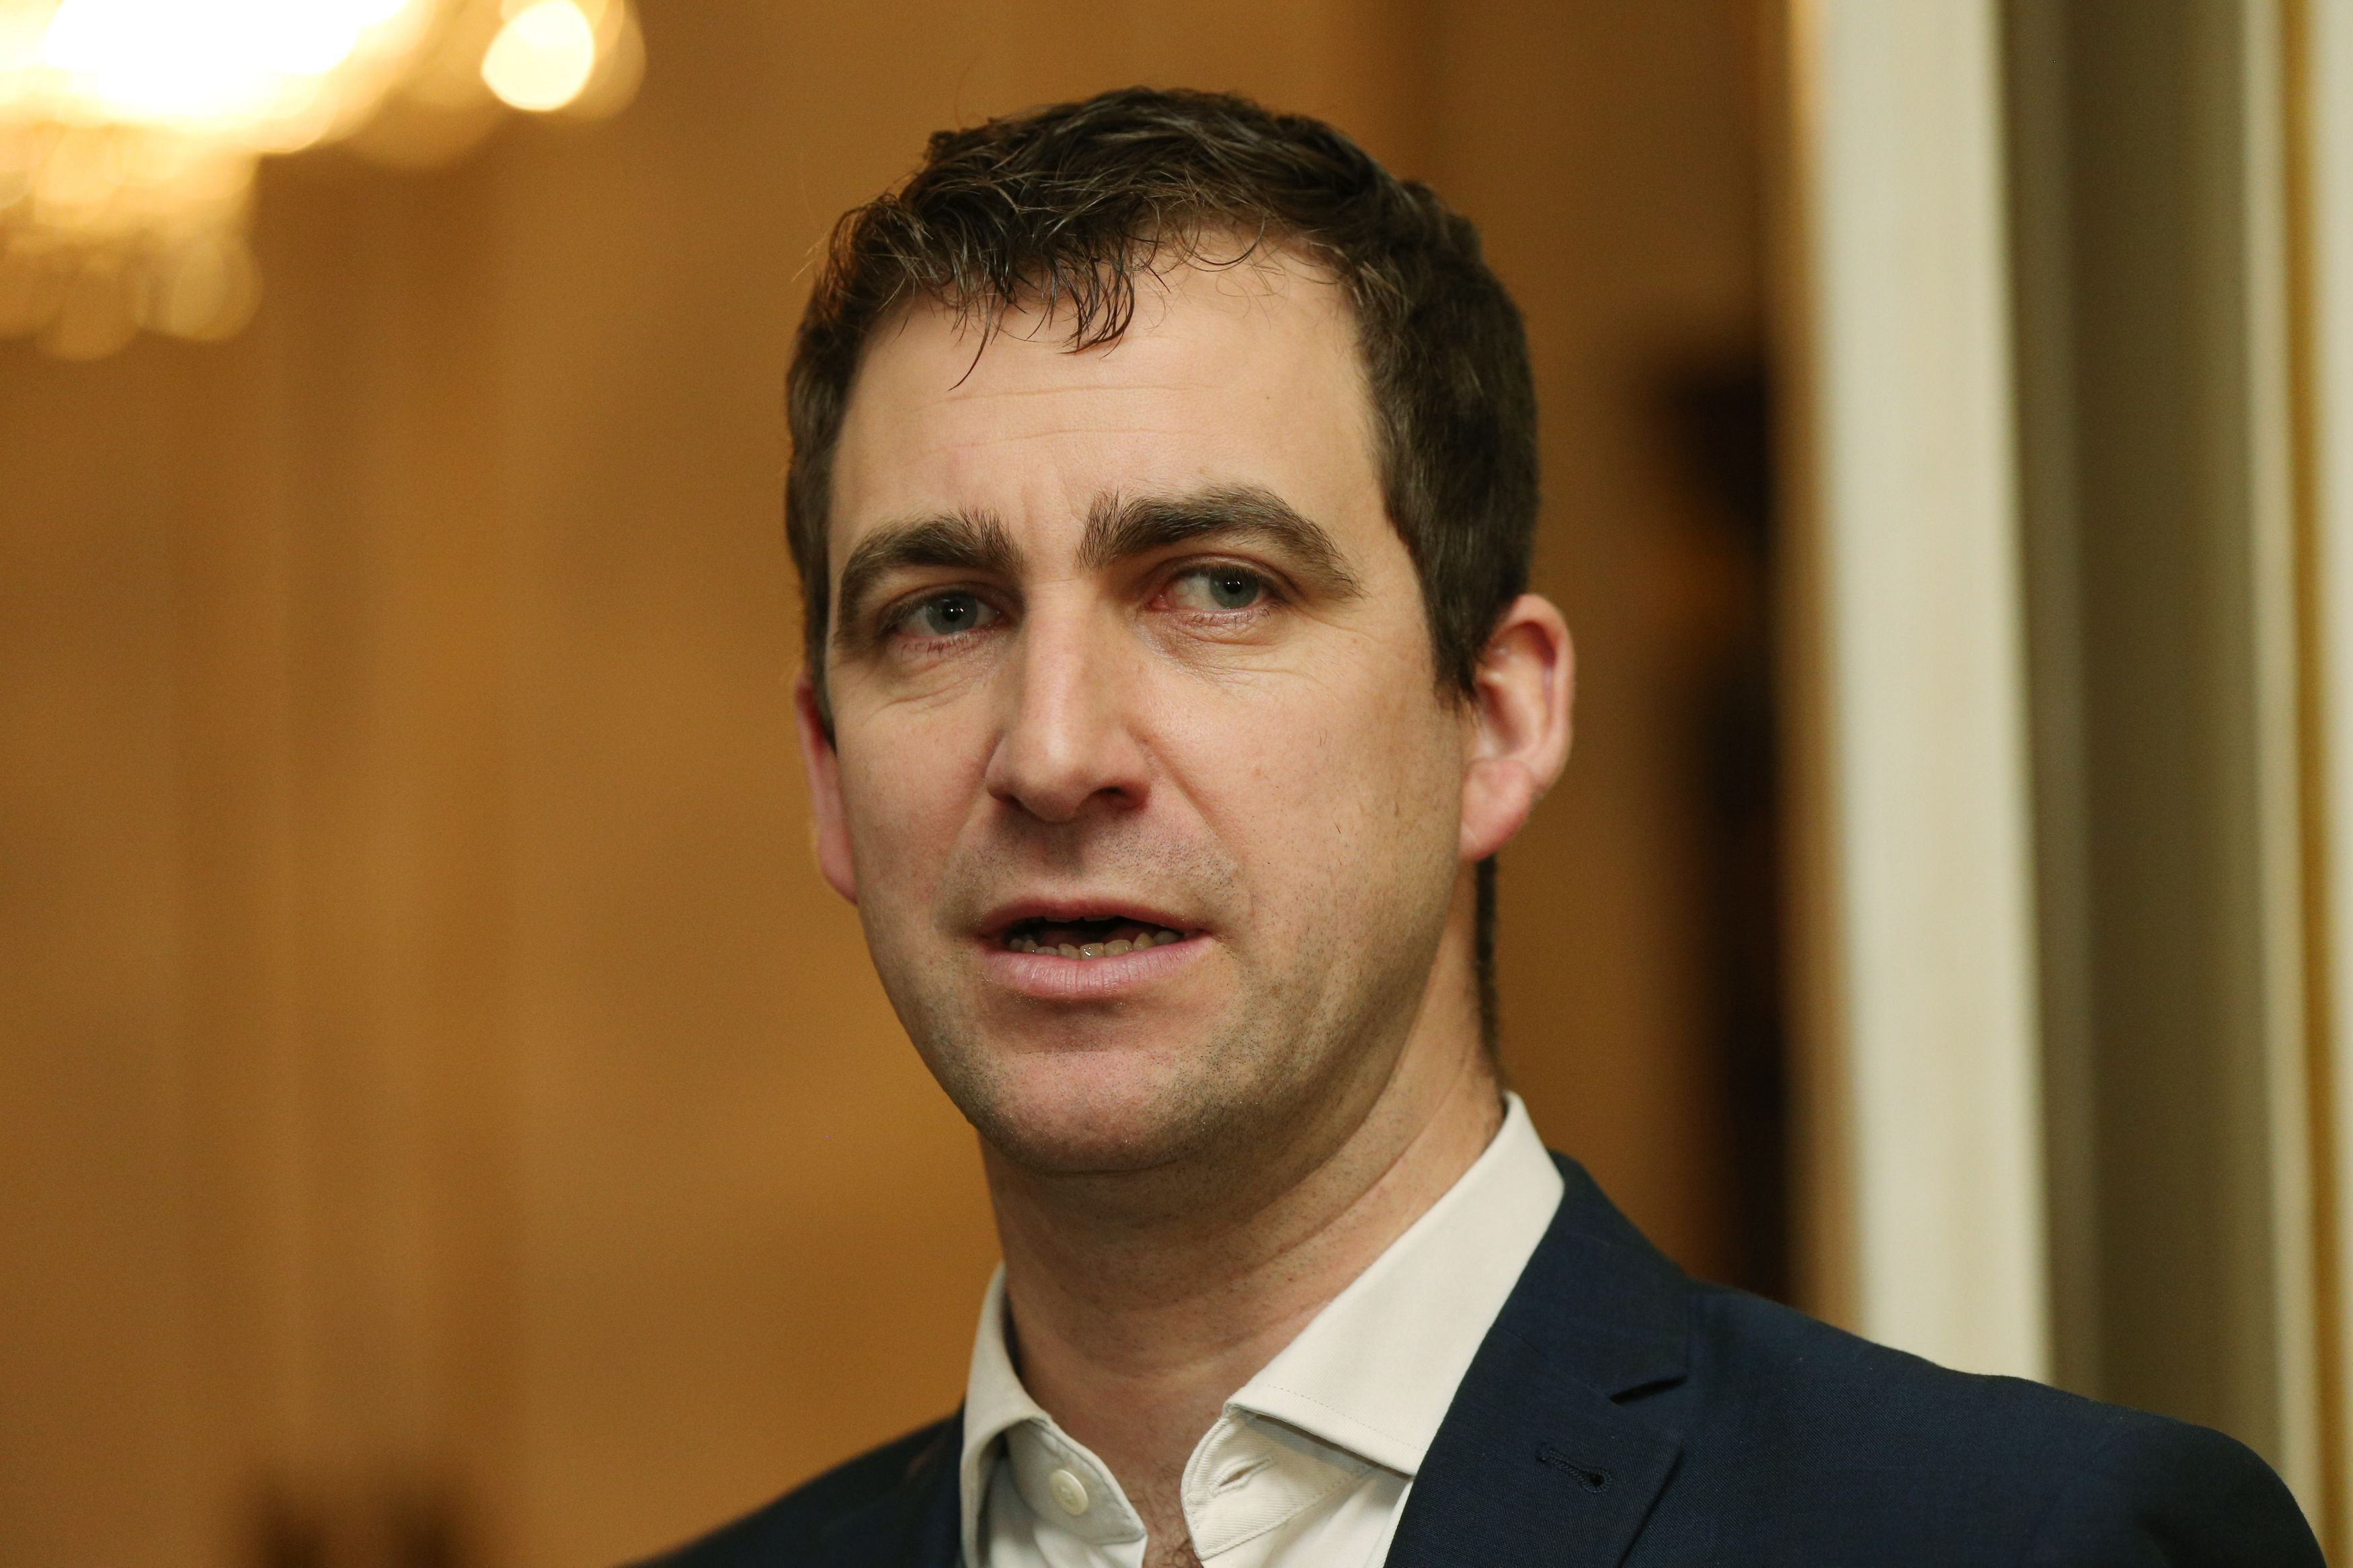 Brendan Cox has quit two charities set up in her memory after sexual assault allegations from his past